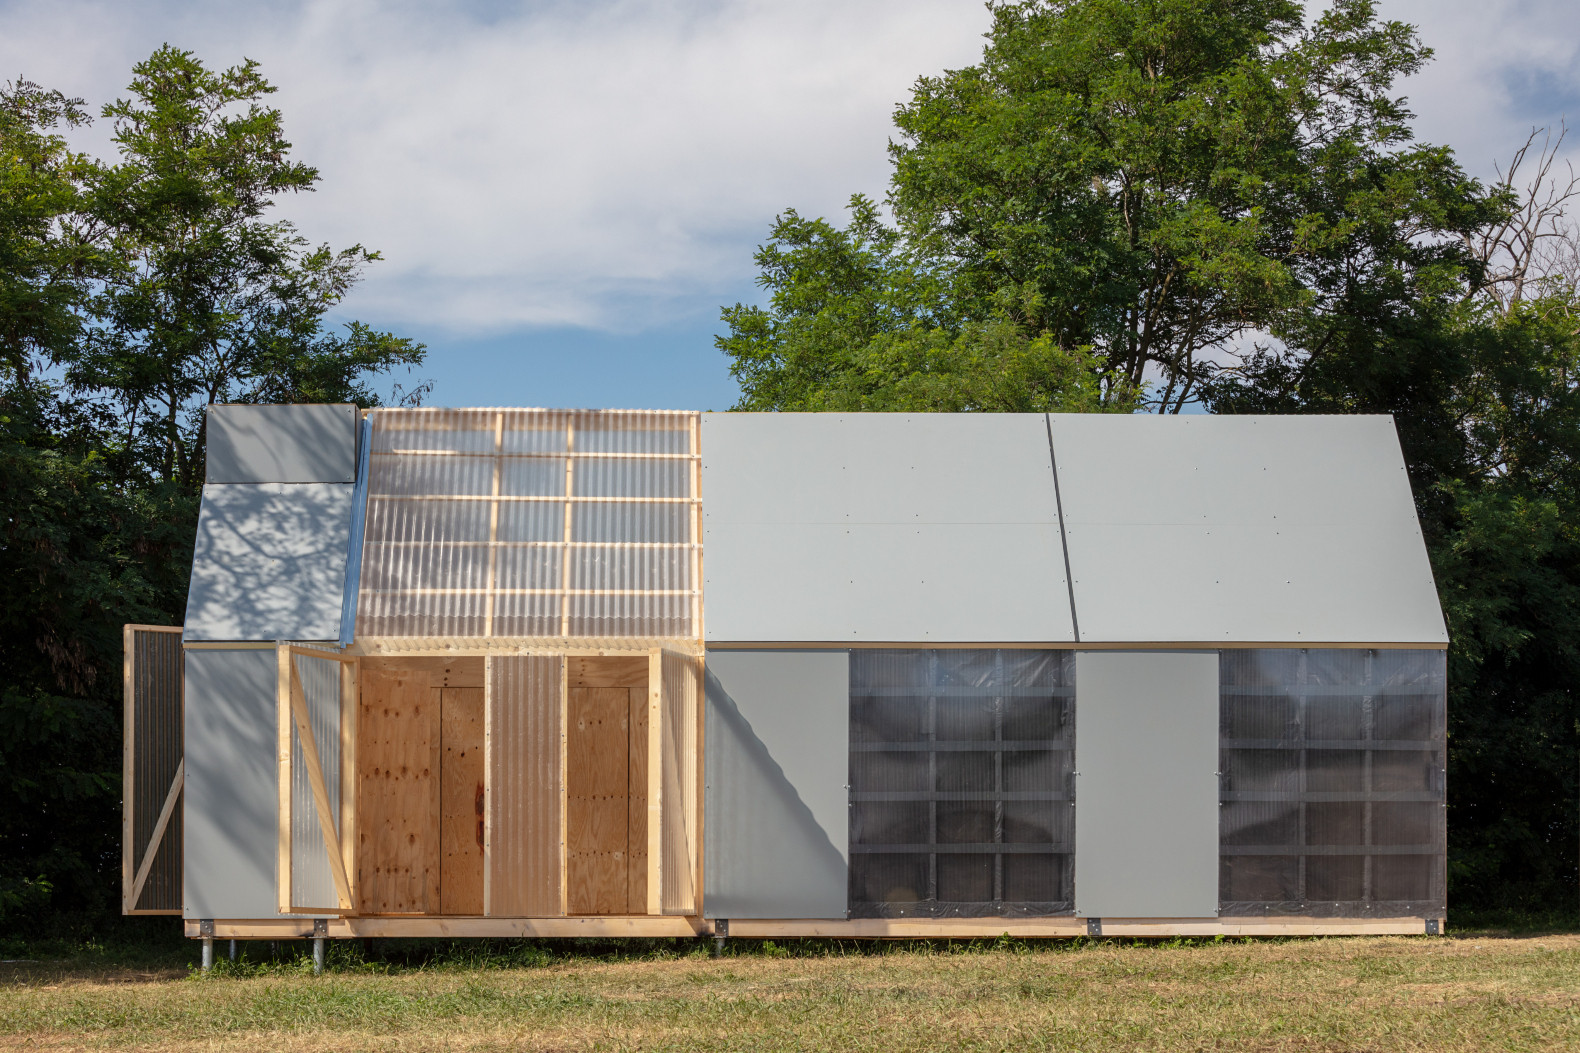 Solar-powered cabin is designed for ultimate flexibility and mobility